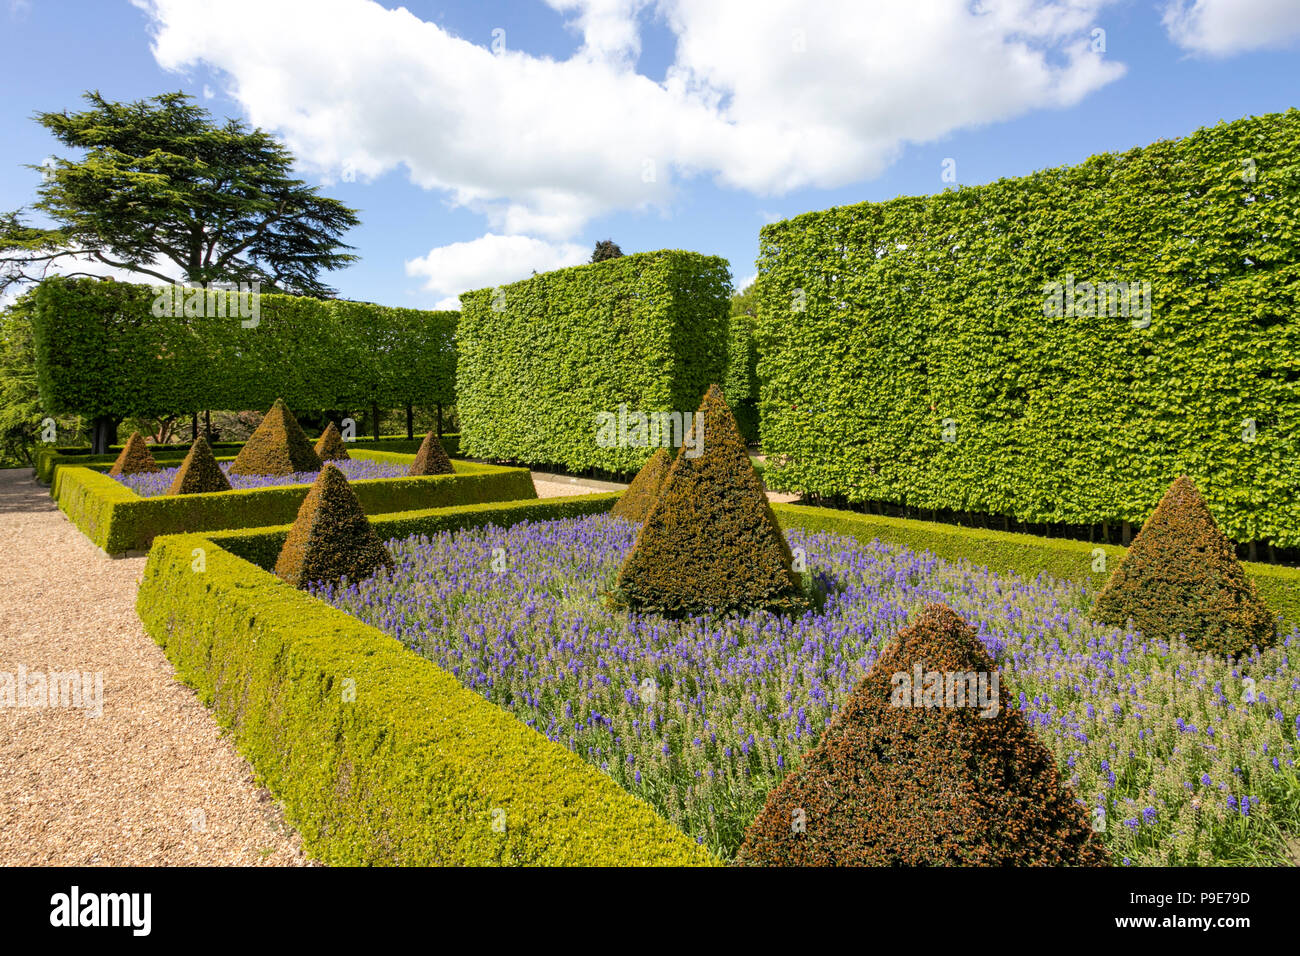 Part of the gardens at Harewood House near Leeds, West Yorkshire UK - Stock Image